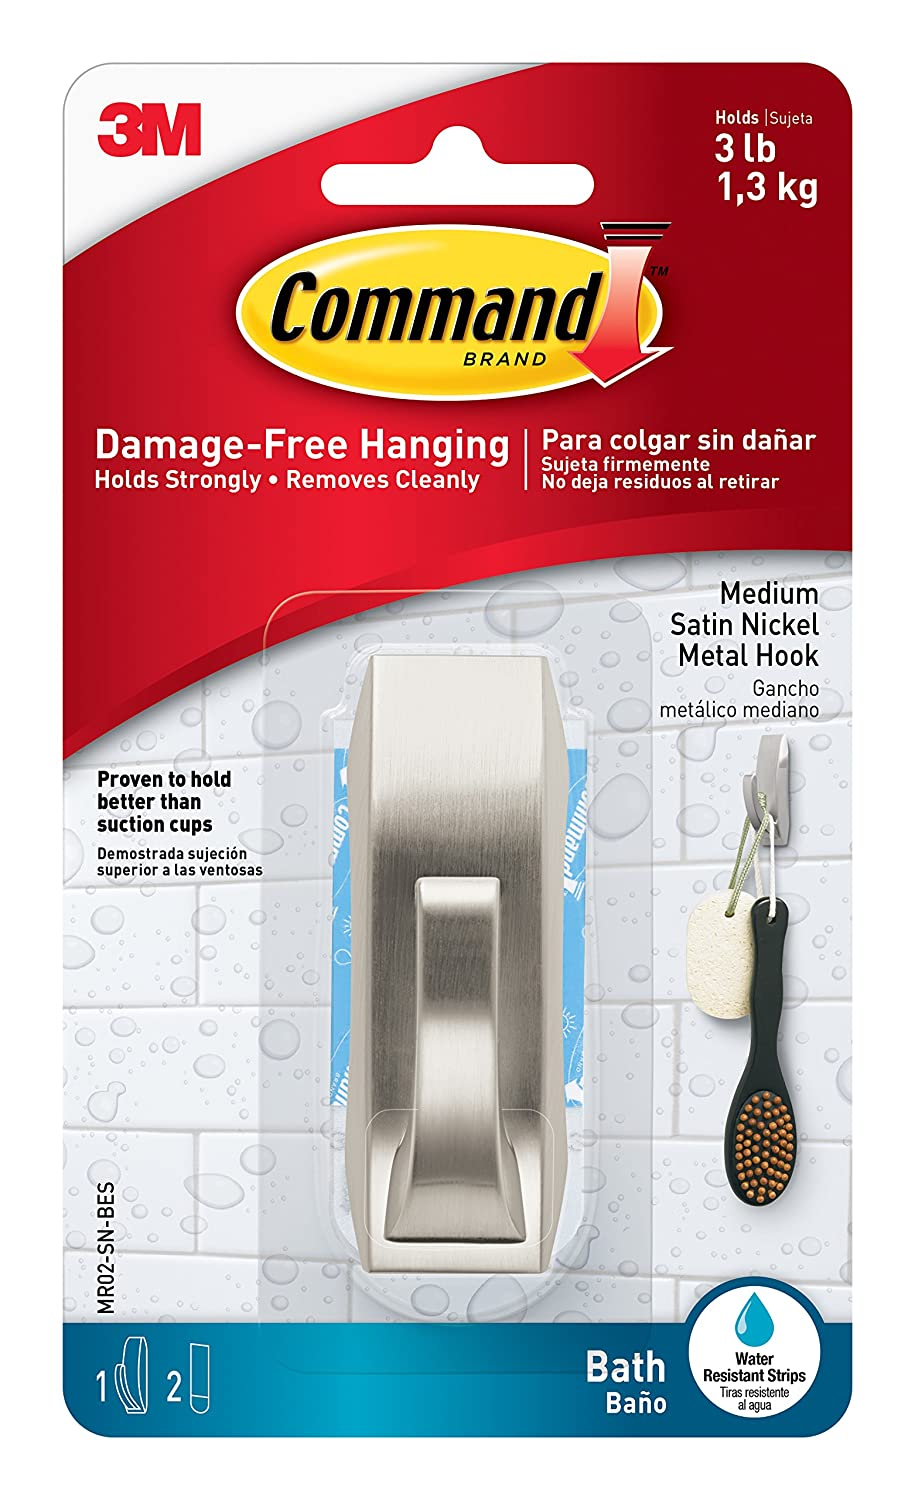 Command Modern Reflections Metal Bath Hook, Large, Satin Nickel, 1-Hook with Water-Resistant Strips (MR03-SN-BES) 3M Command